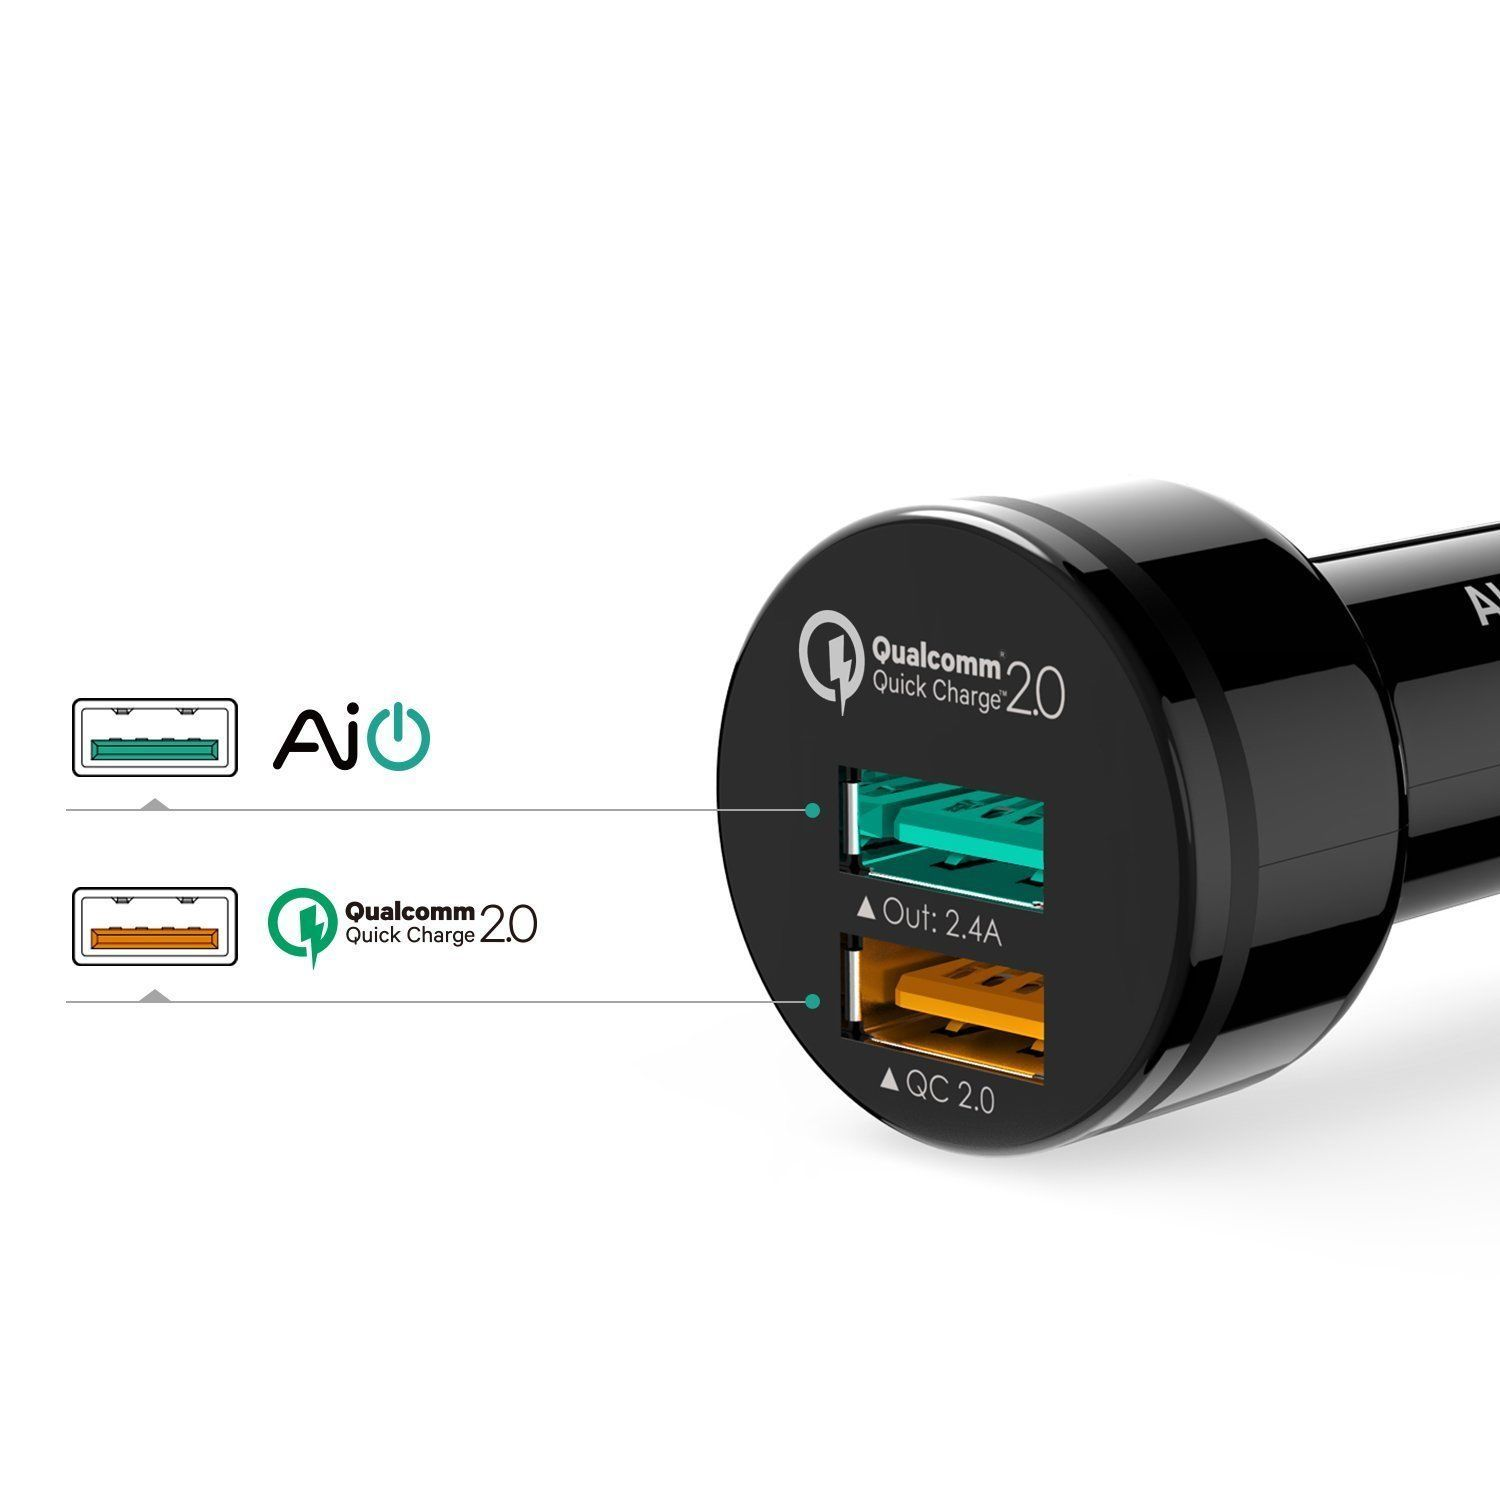 Aukey Car Charger with Quick Charge 2.0 Port for LG G4, Samsung Galaxy S7/S6/Edg